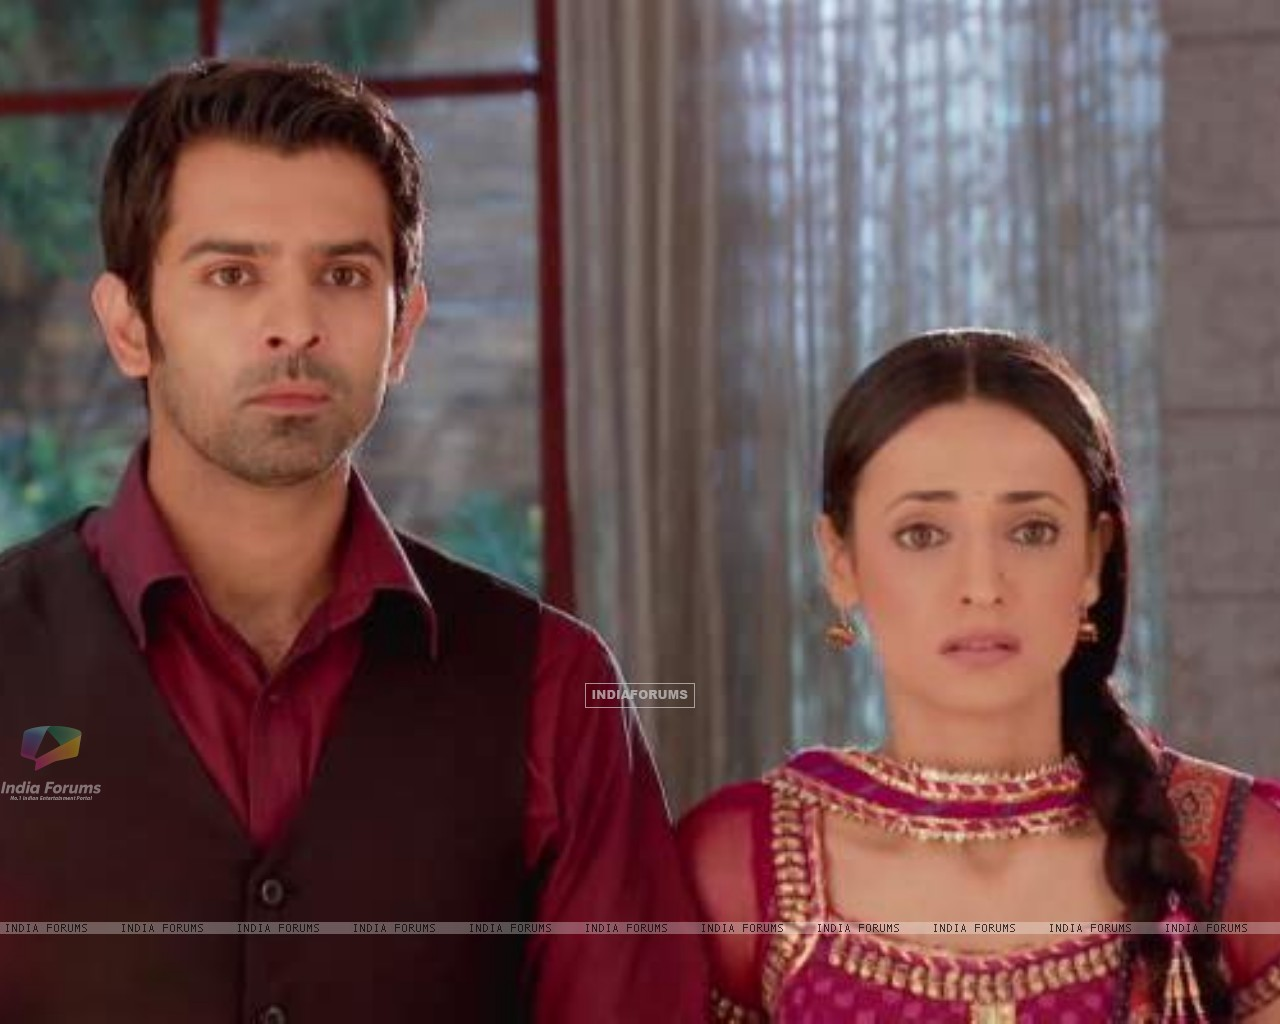 Arnav and Khushi Wallpapers http://www.india-forums.com/wallpaper/1280x1024/195533-khushi-and-arnav.htm